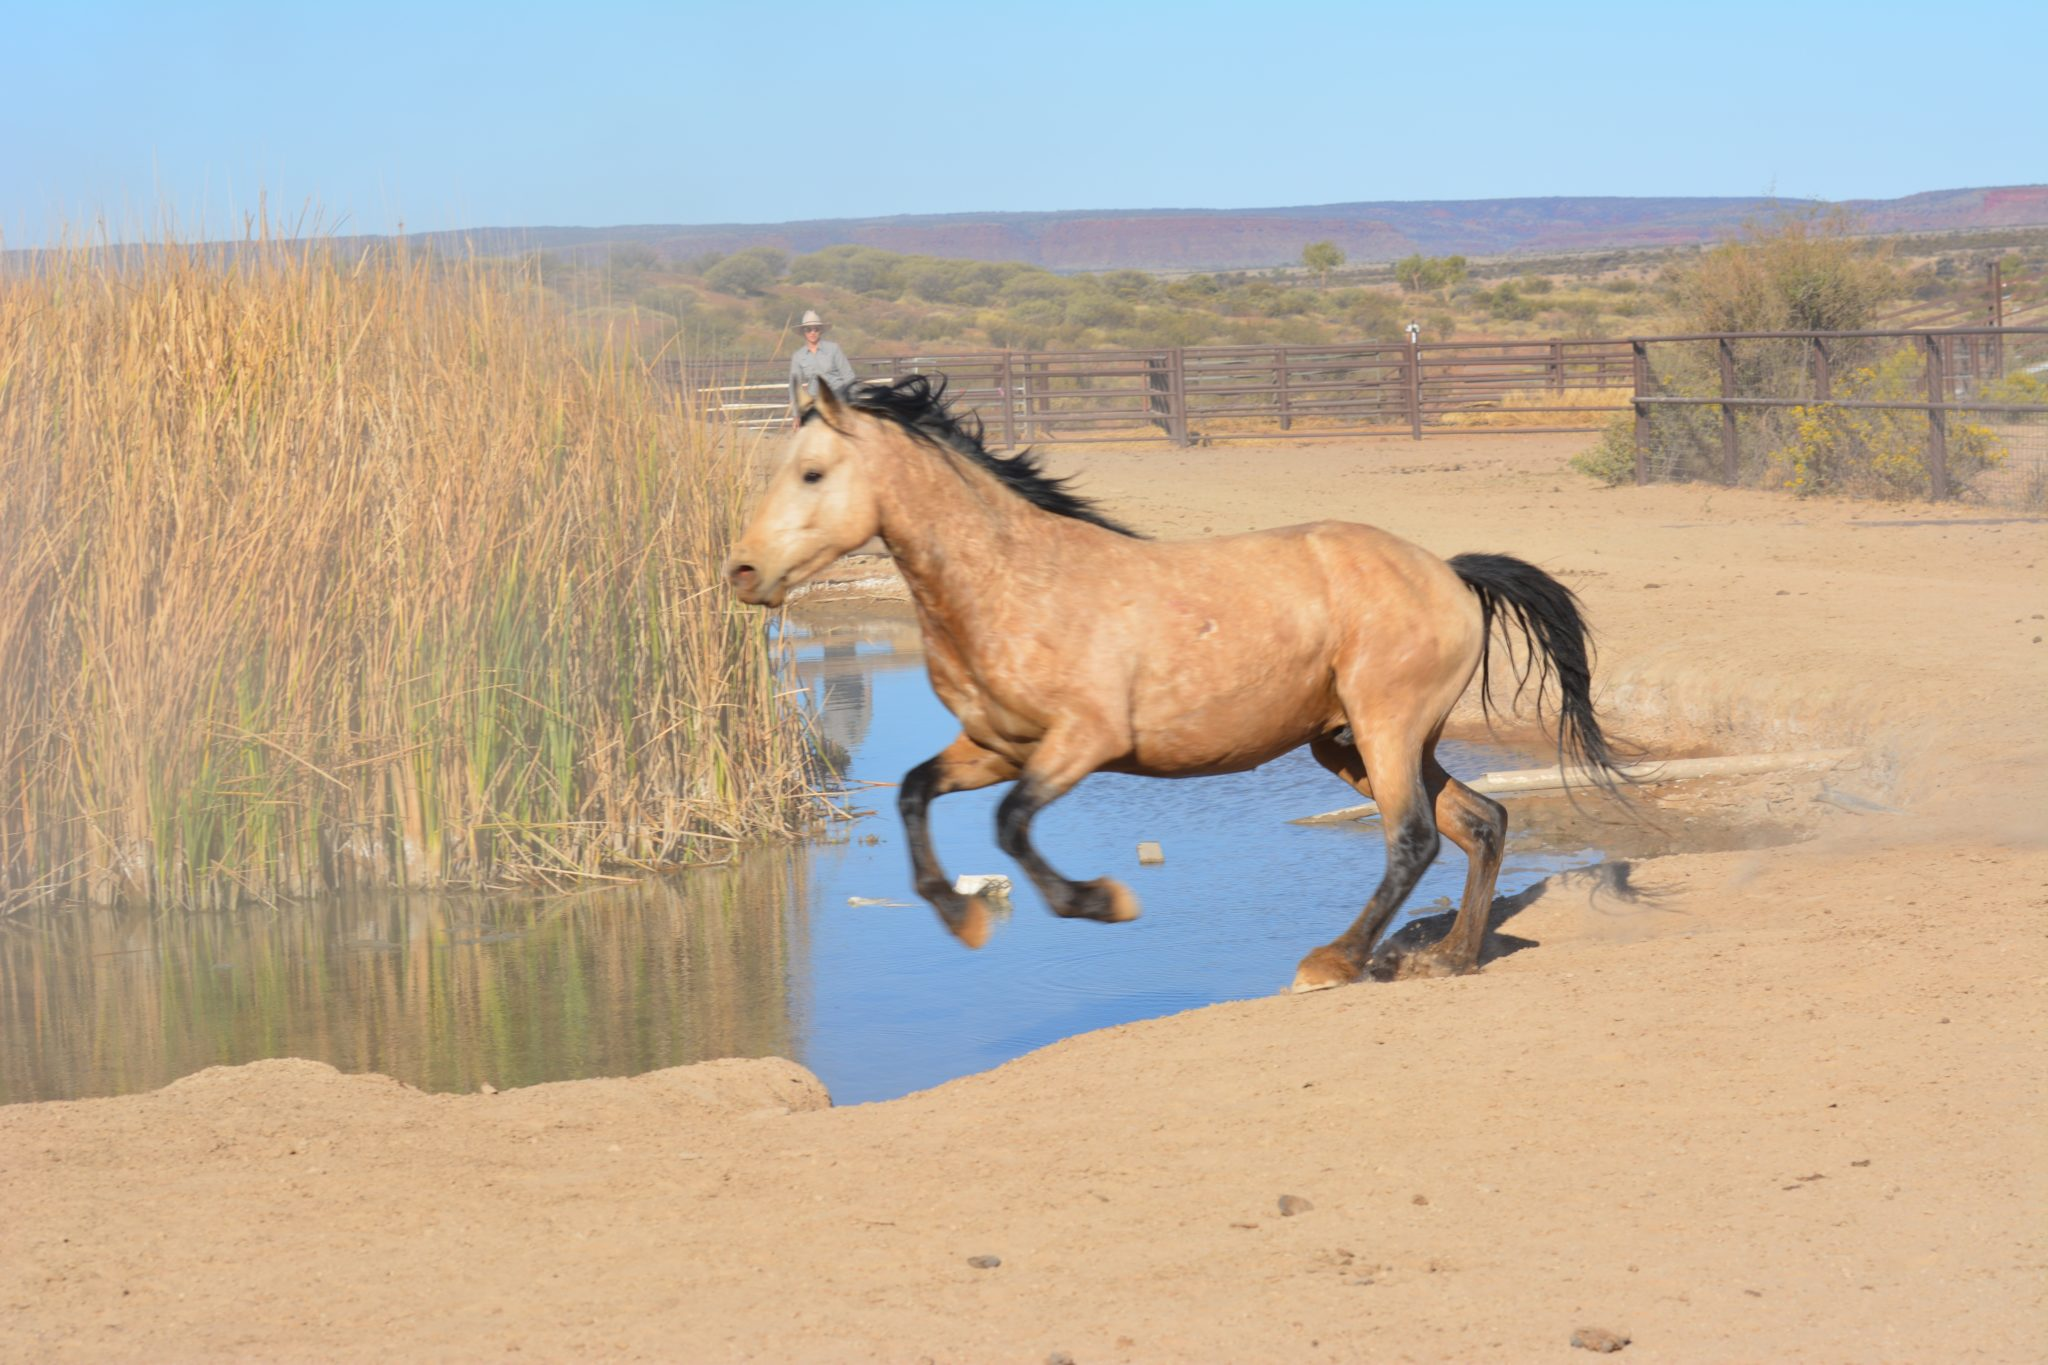 Desert brumby safari Australian outback horse riding holiday